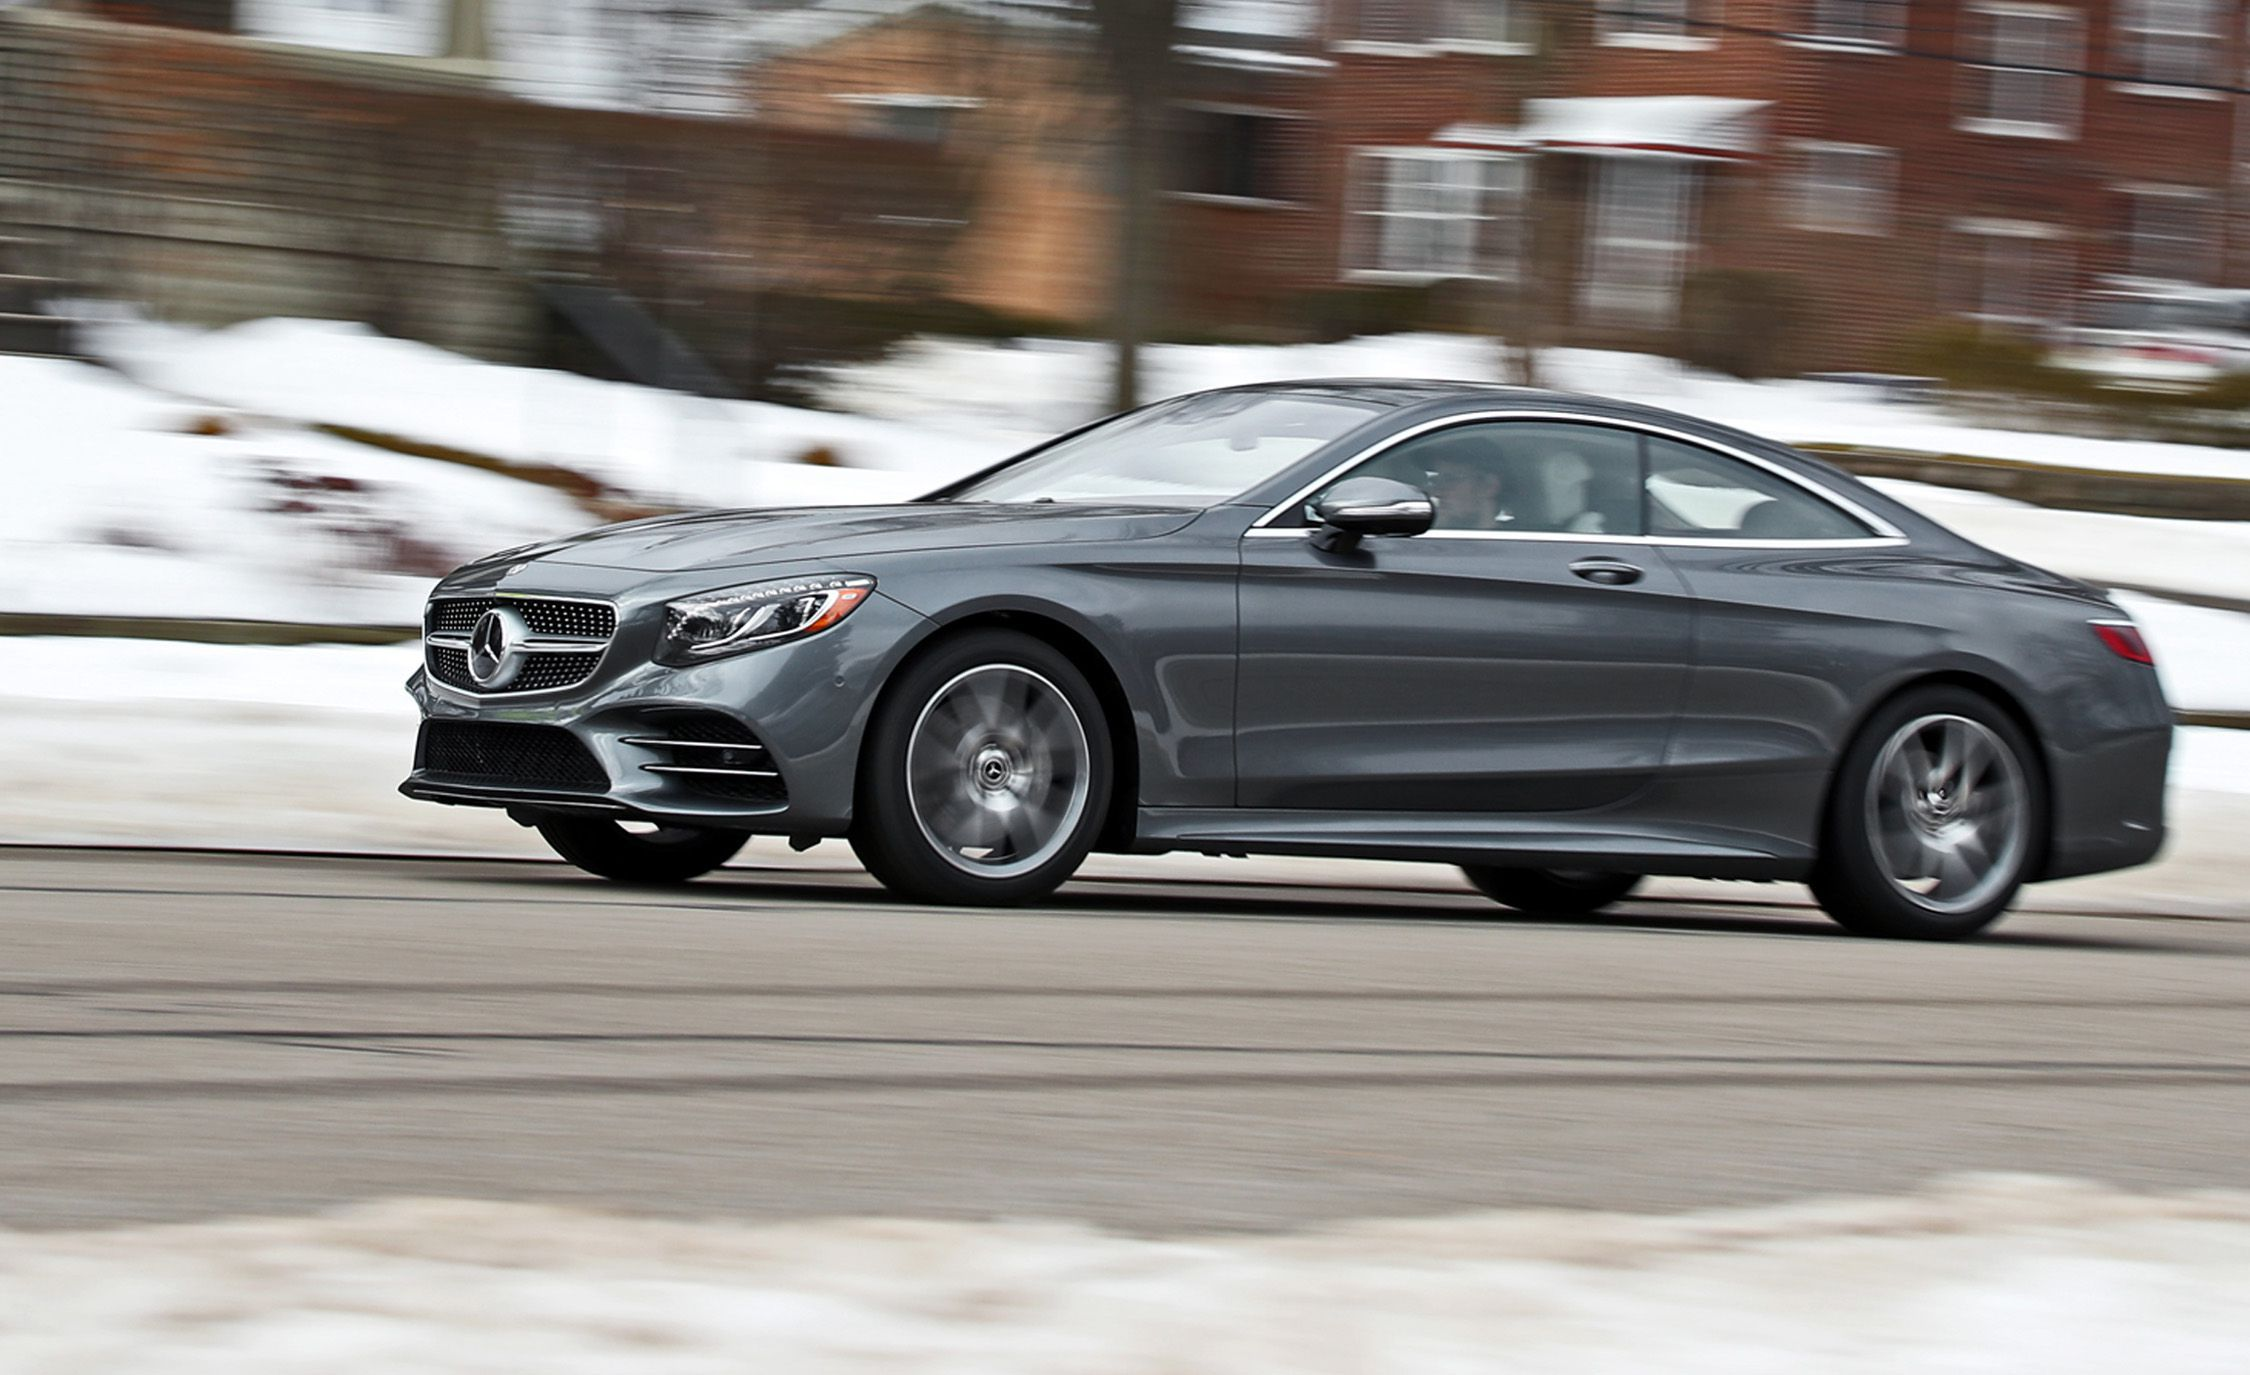 2018 Mercedes-Benz S560 4Matic Coupe